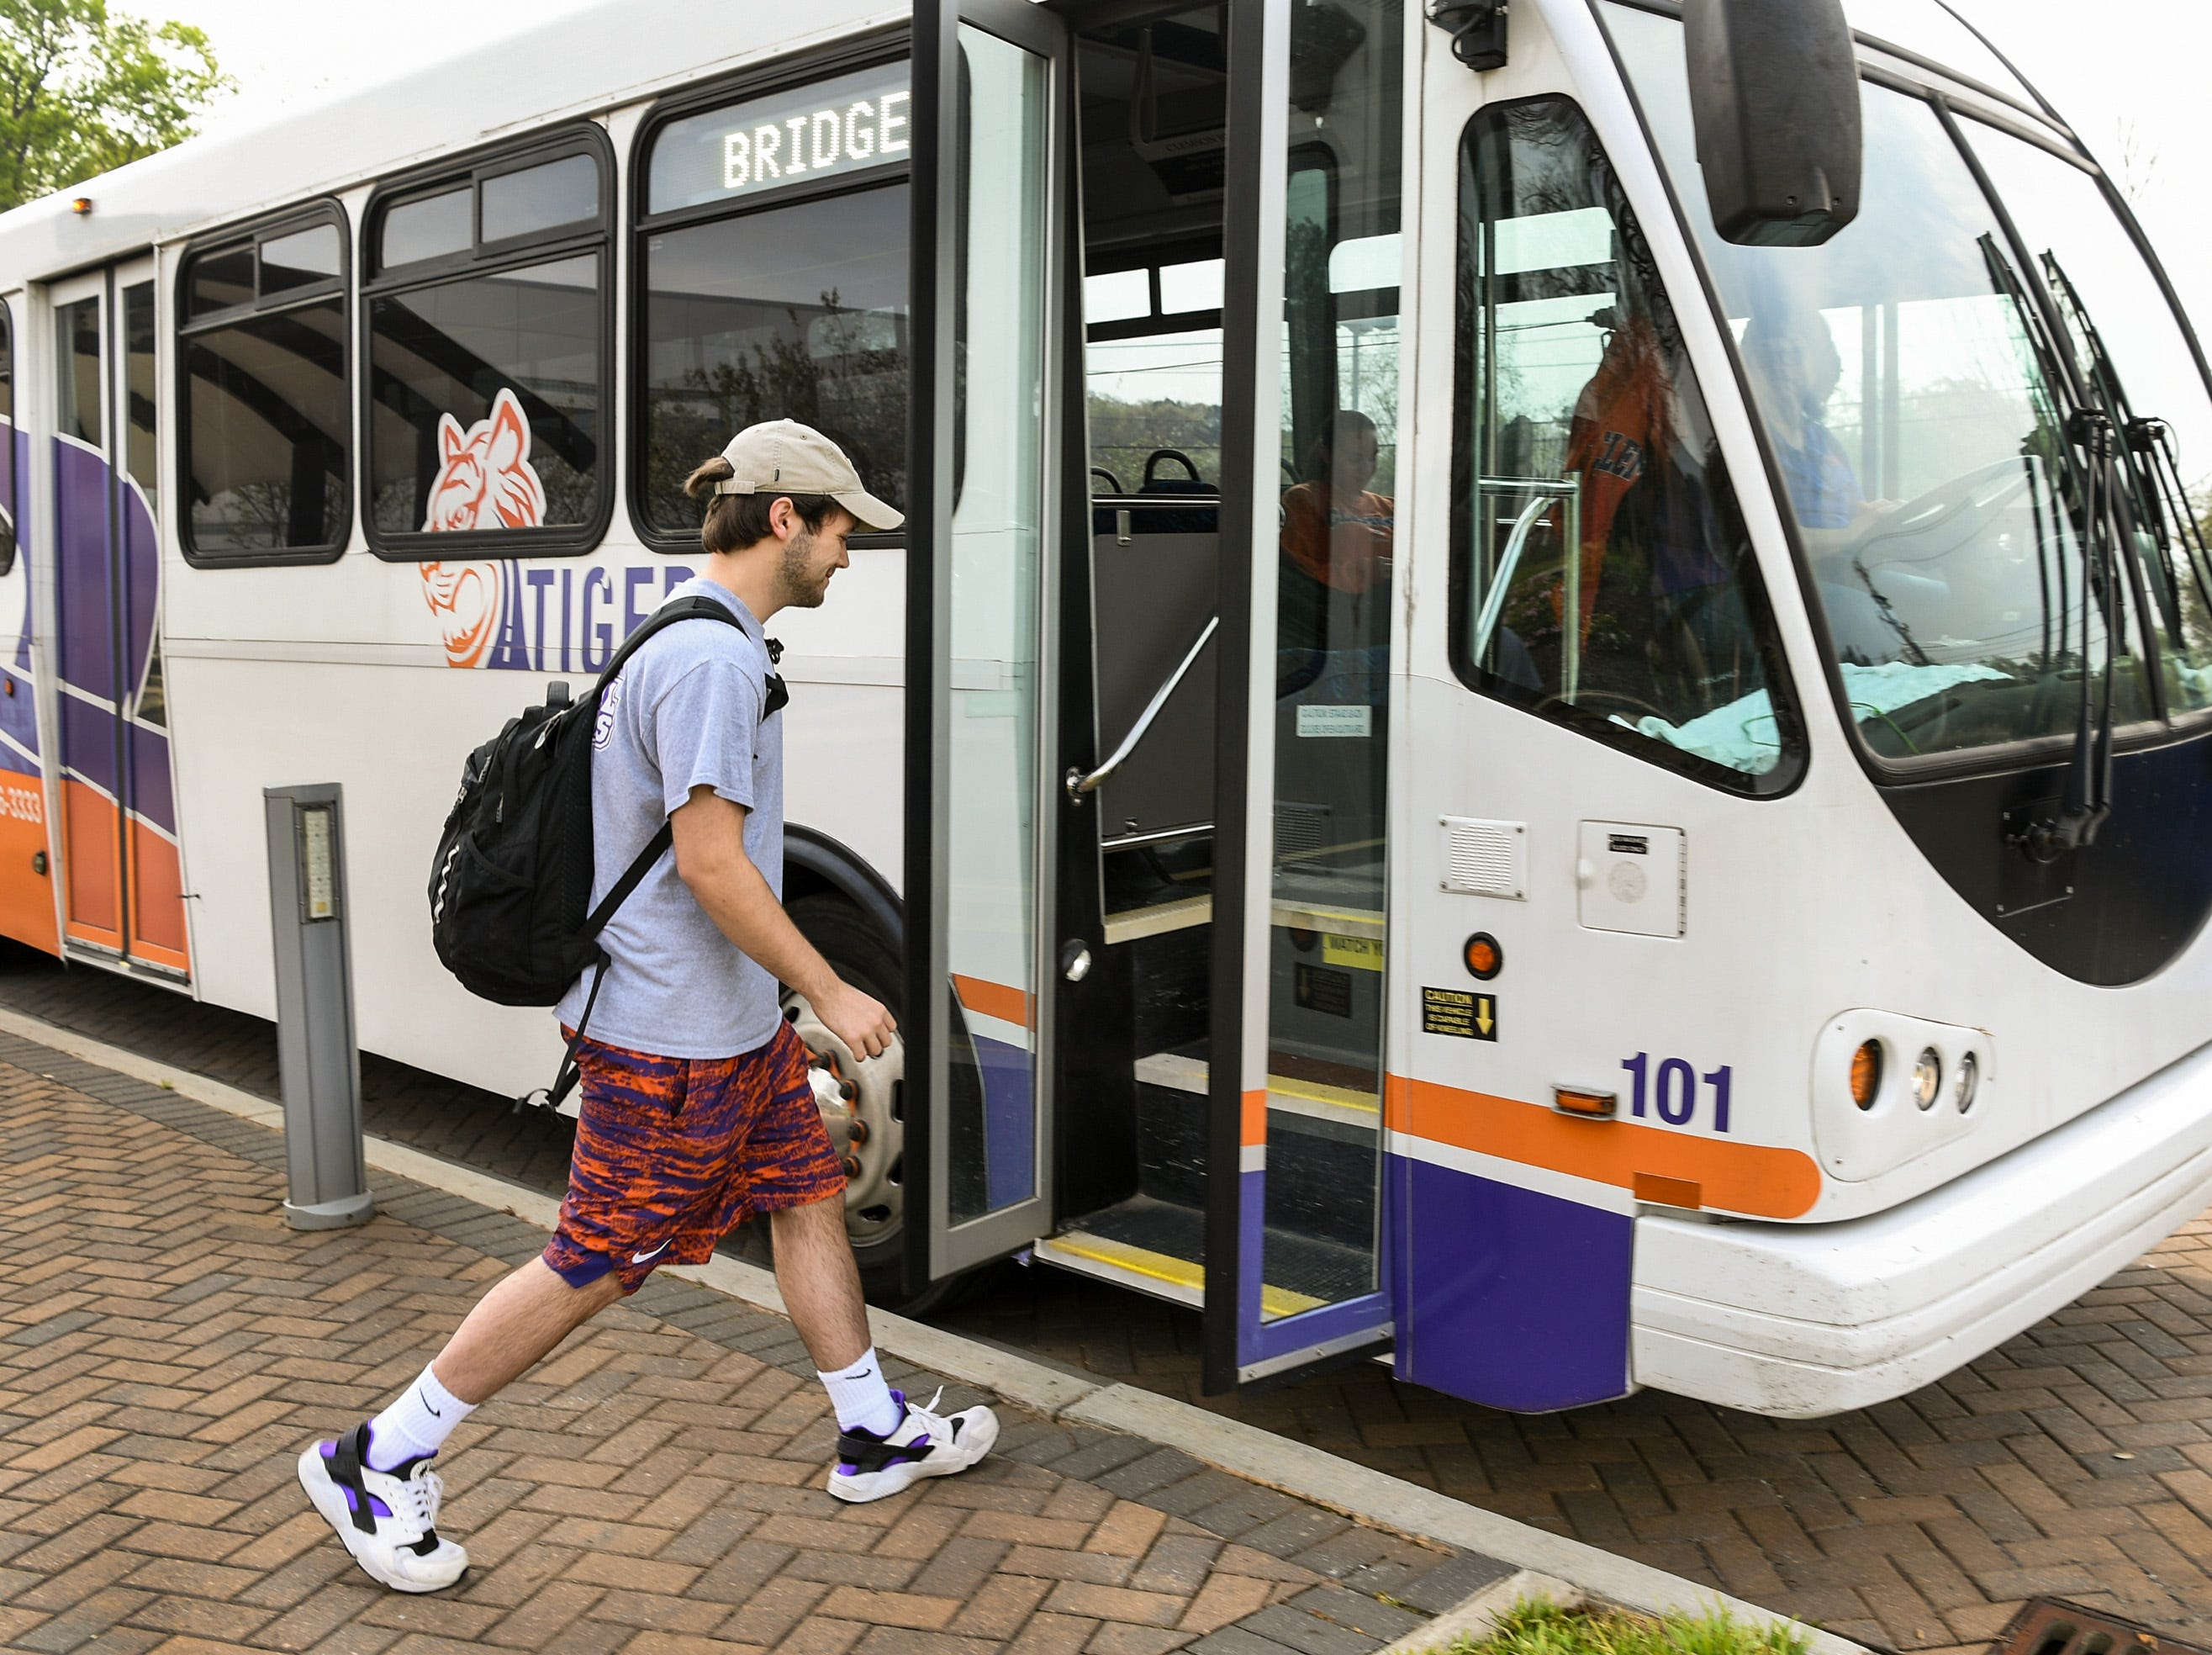 Porter Duncan of Florence, a student in the Bridge to Clemson program, takes the bus back to his Clemson campus housing after his classes at Tri-County Technical College in Pendleton Monday.